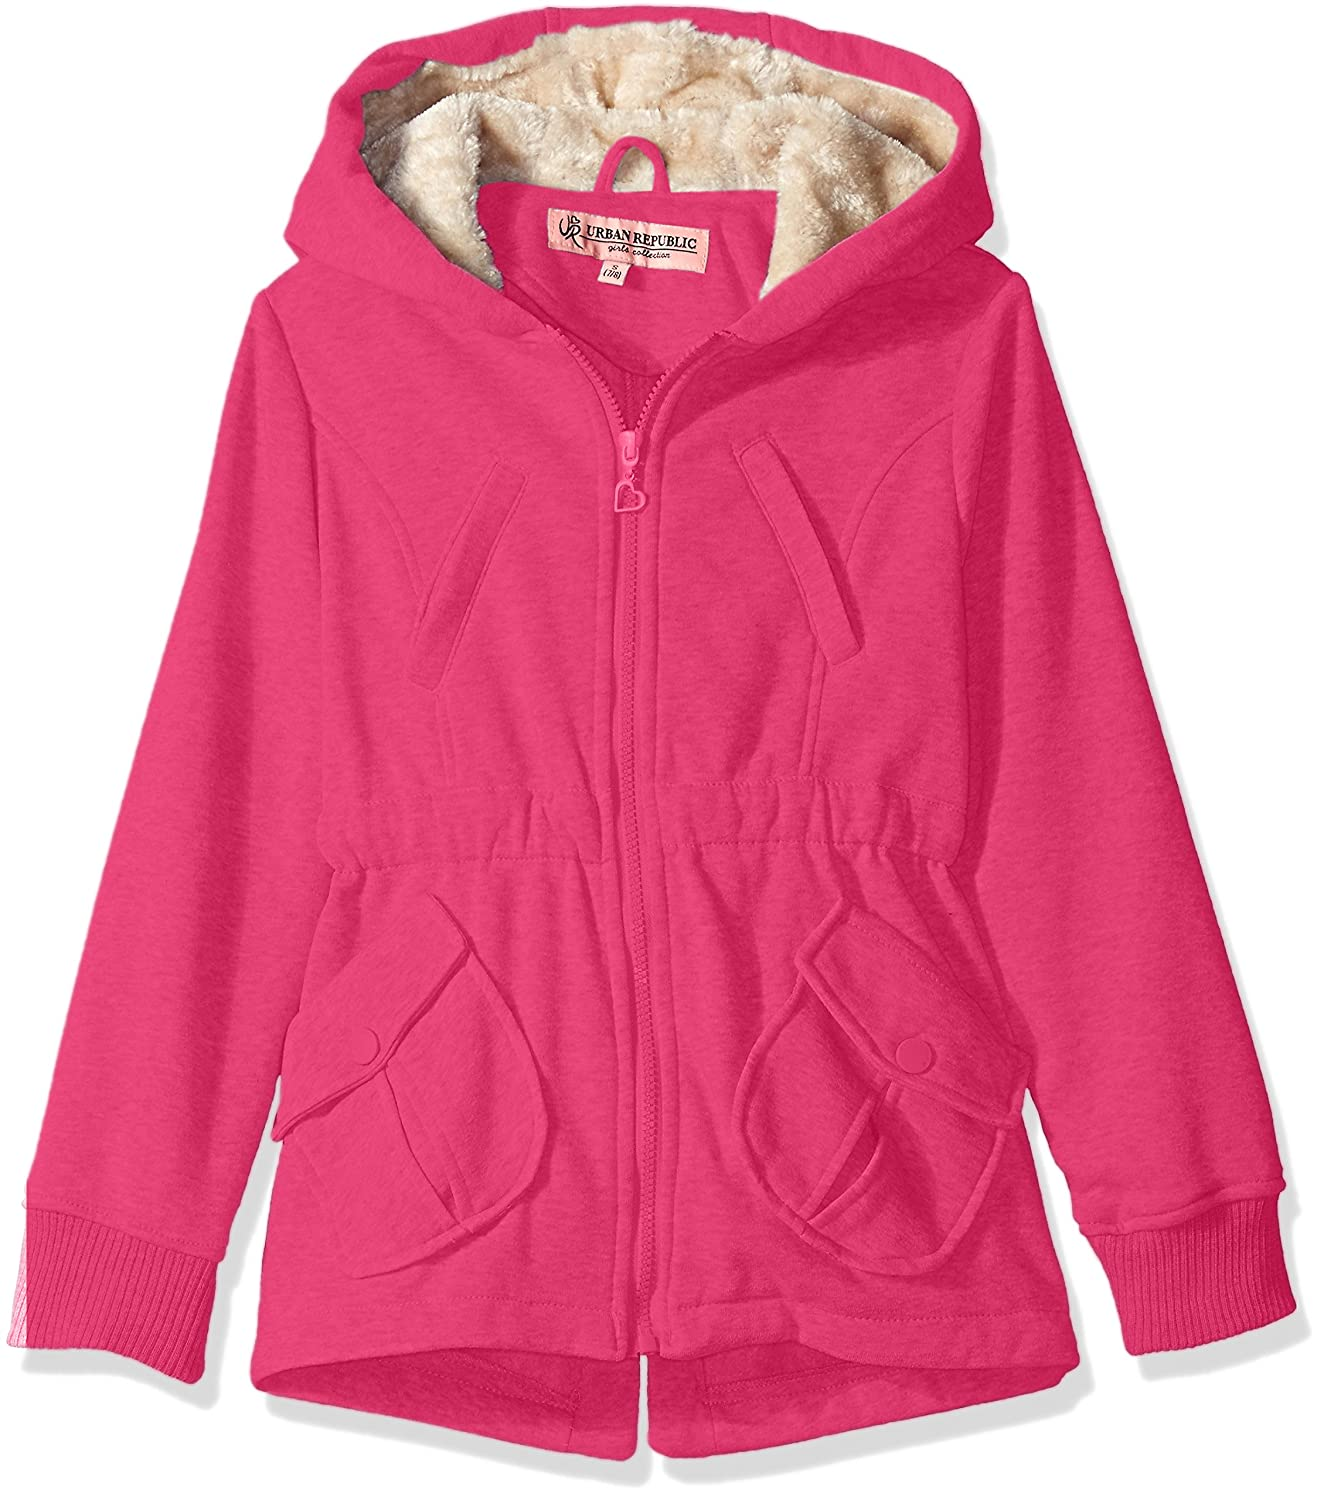 Urban Republic Girls' Fleece Jacket 5588